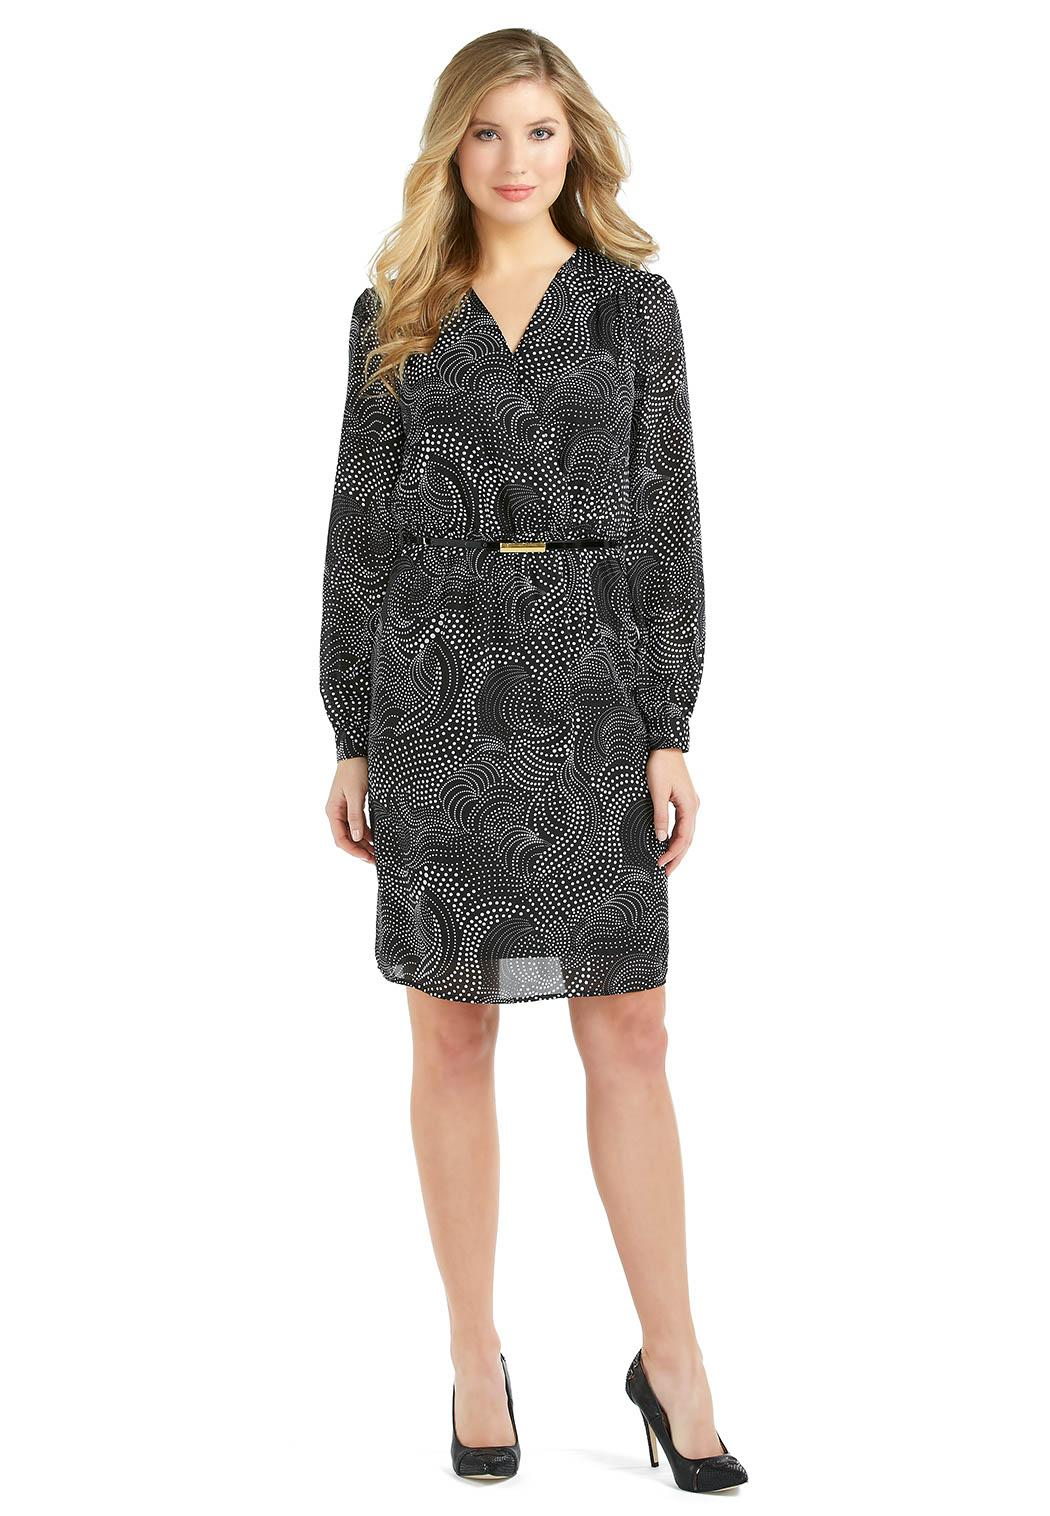 Catofashions.com Faux Wrap Dress